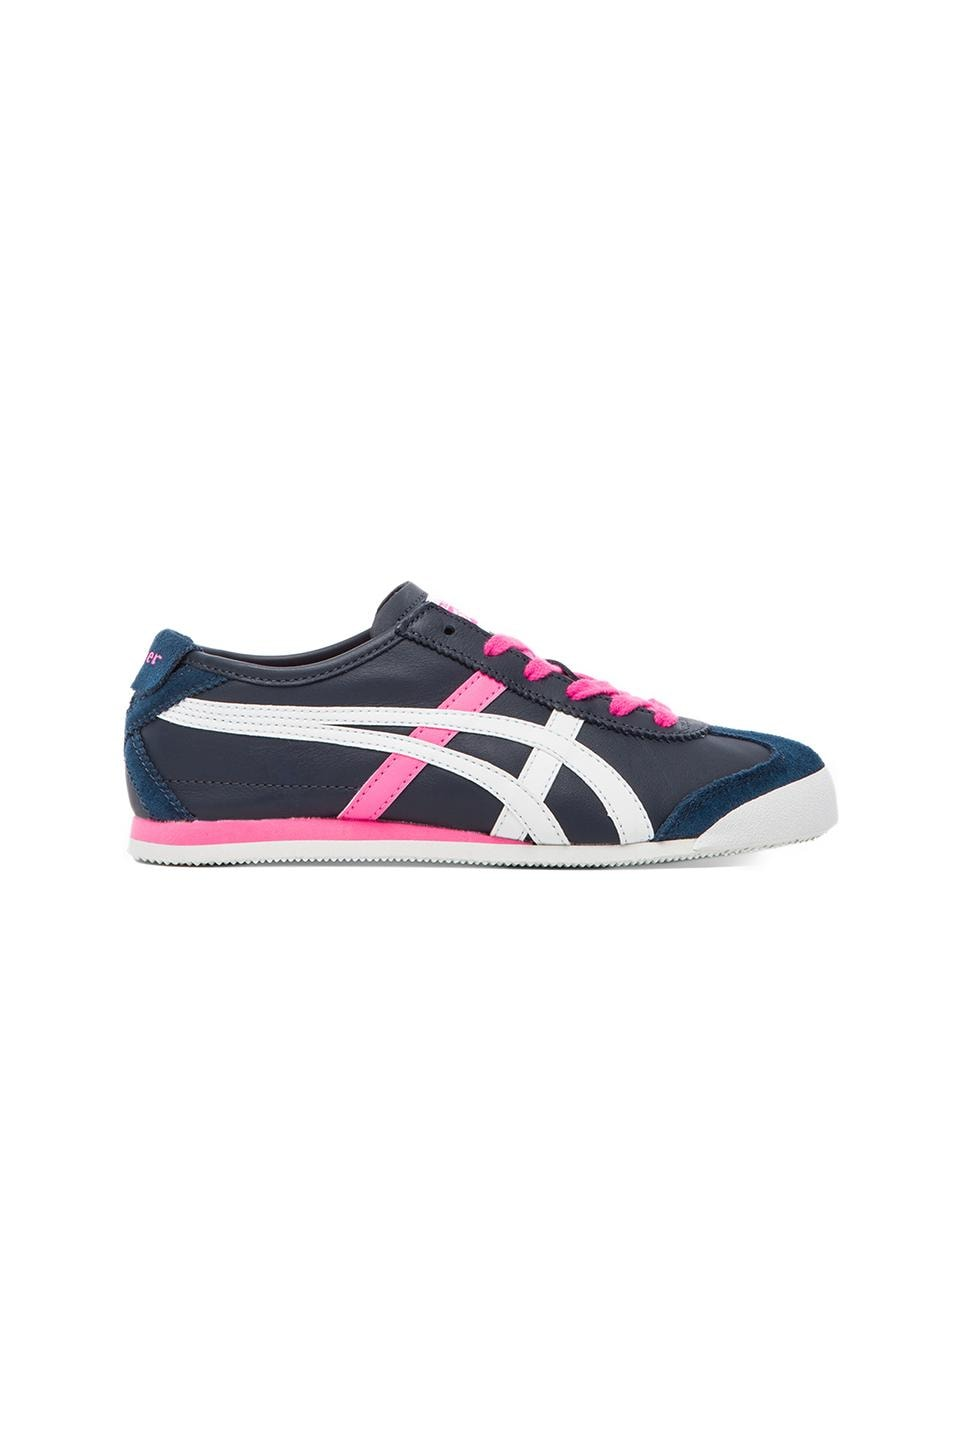 Onitsuka Tiger Mexico 66 Sneaker in Dark Navy & White